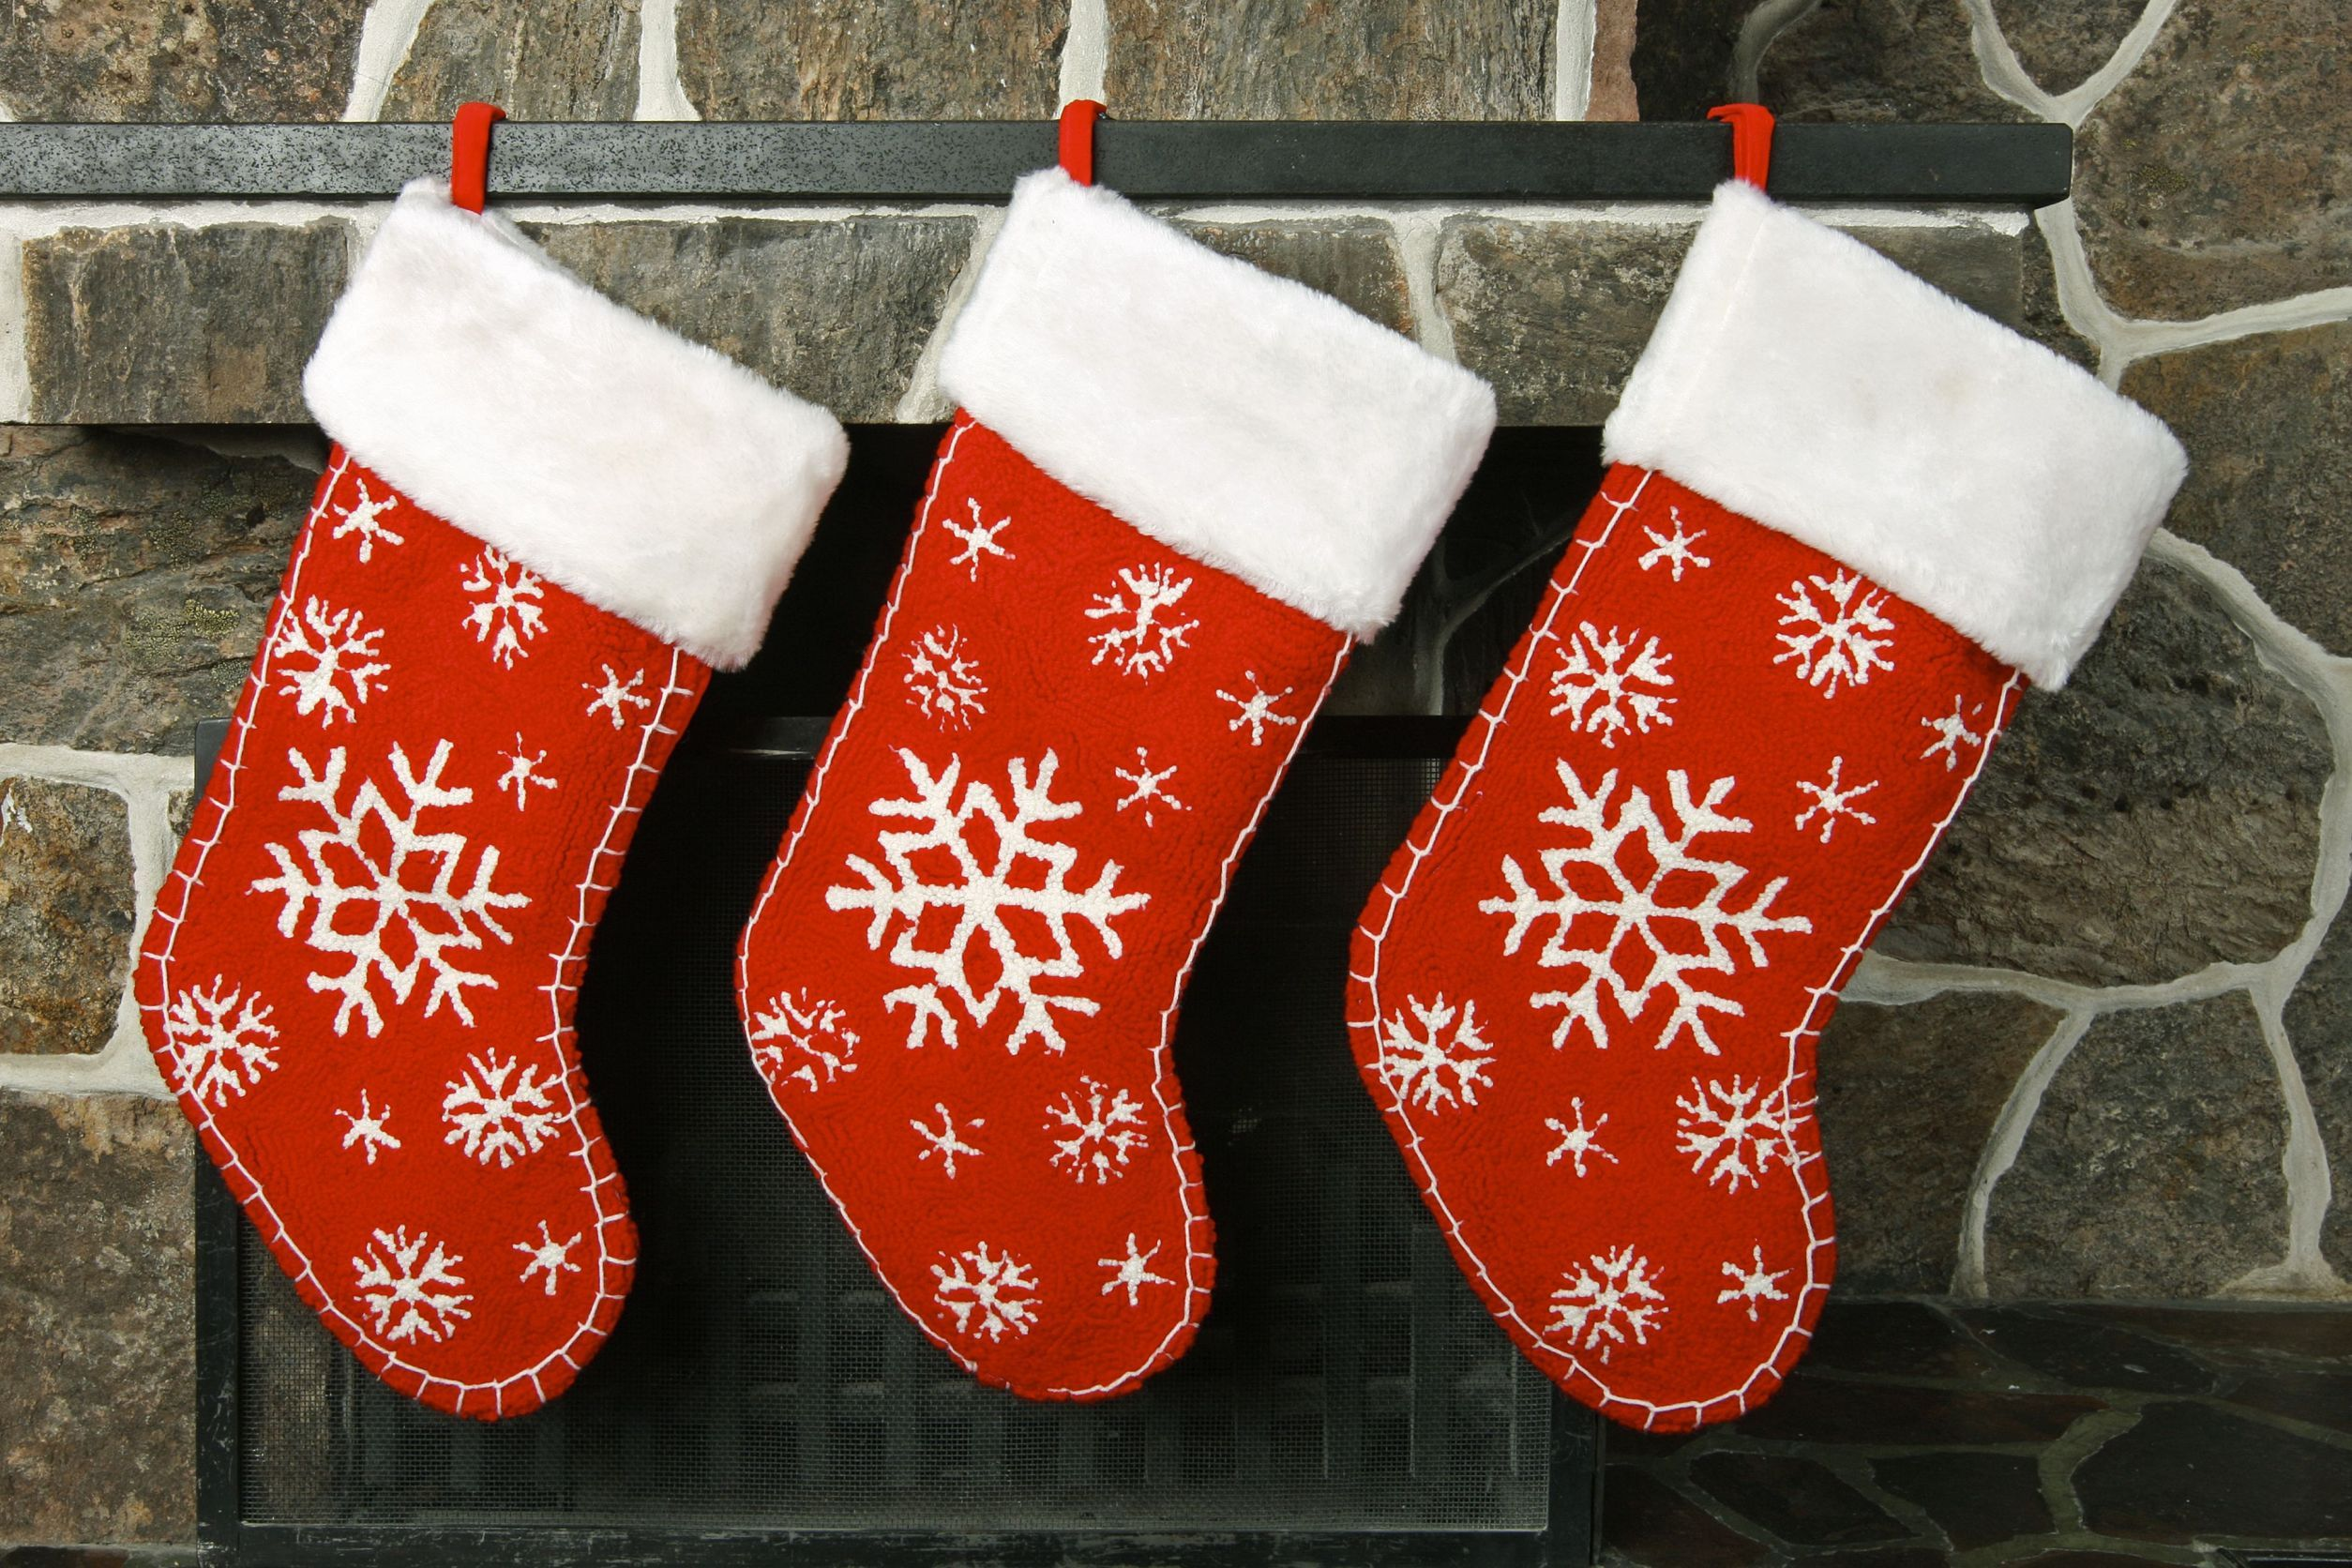 decorating ideas christmas stocking designspretty designs 17 best images about diy christmas decorations on pinterest - Christmas Stocking Design Ideas